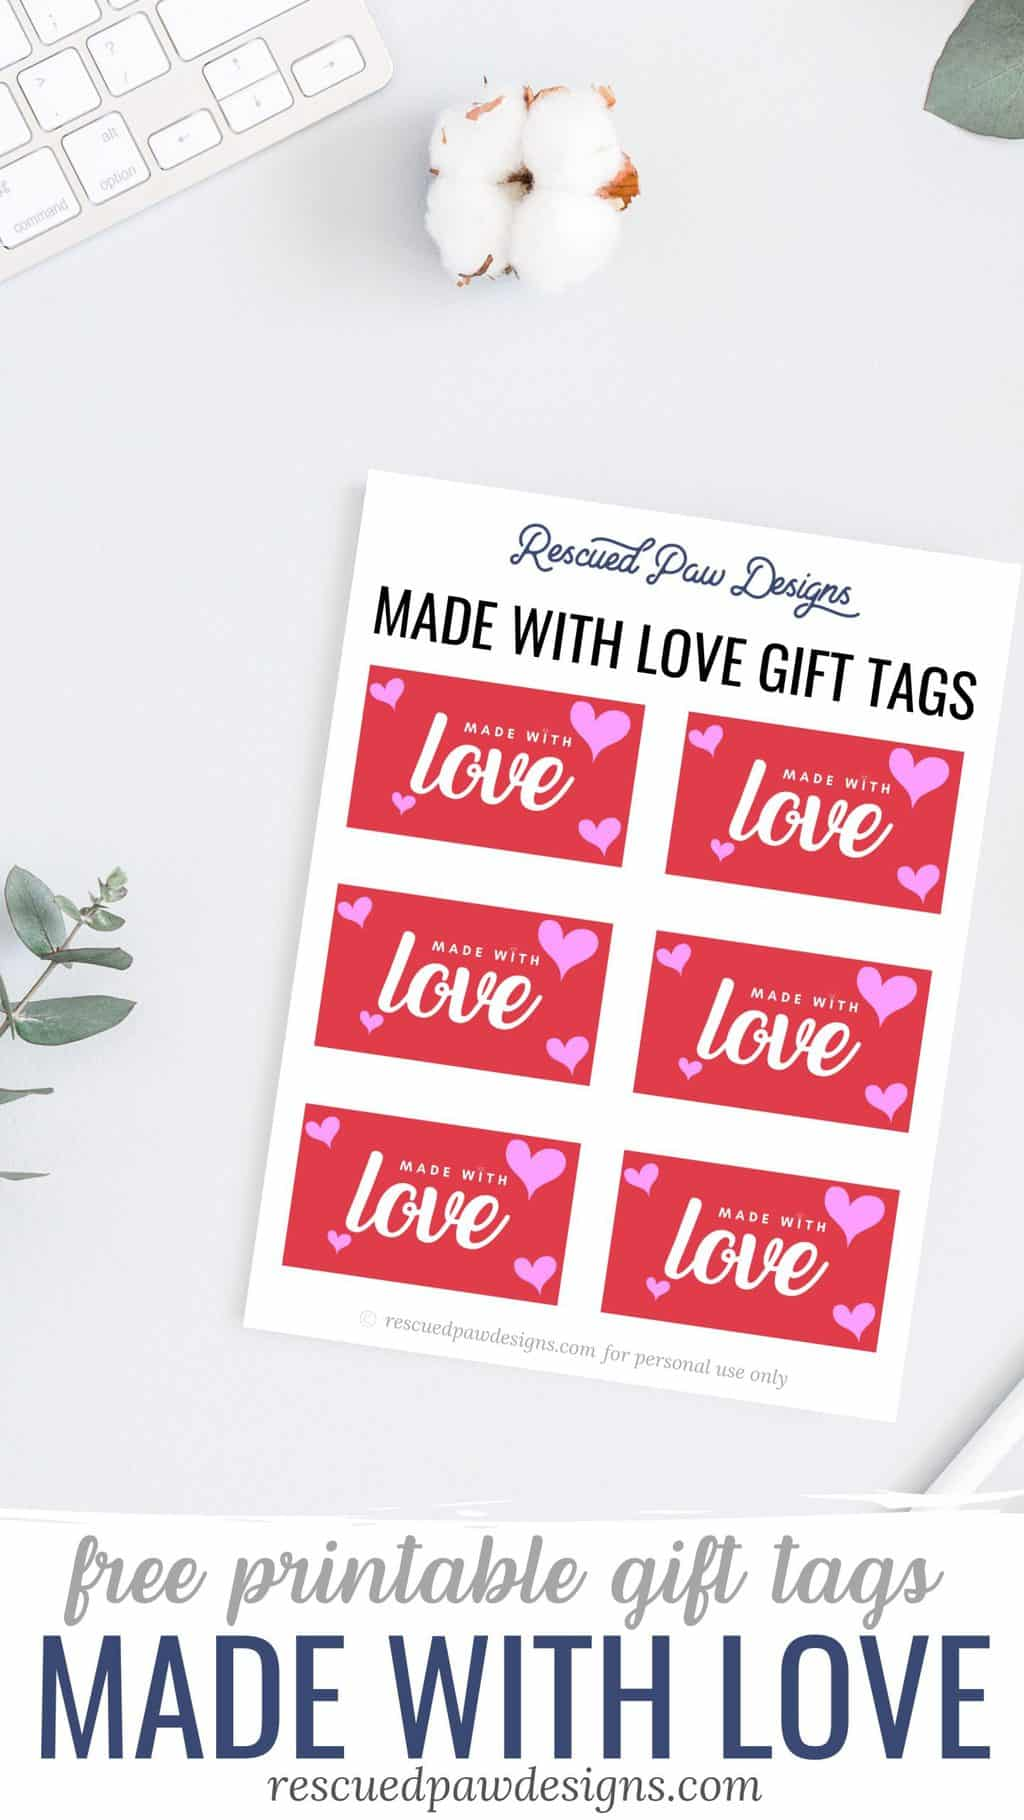 Made with Love Gift Tag Labels - Free Printable